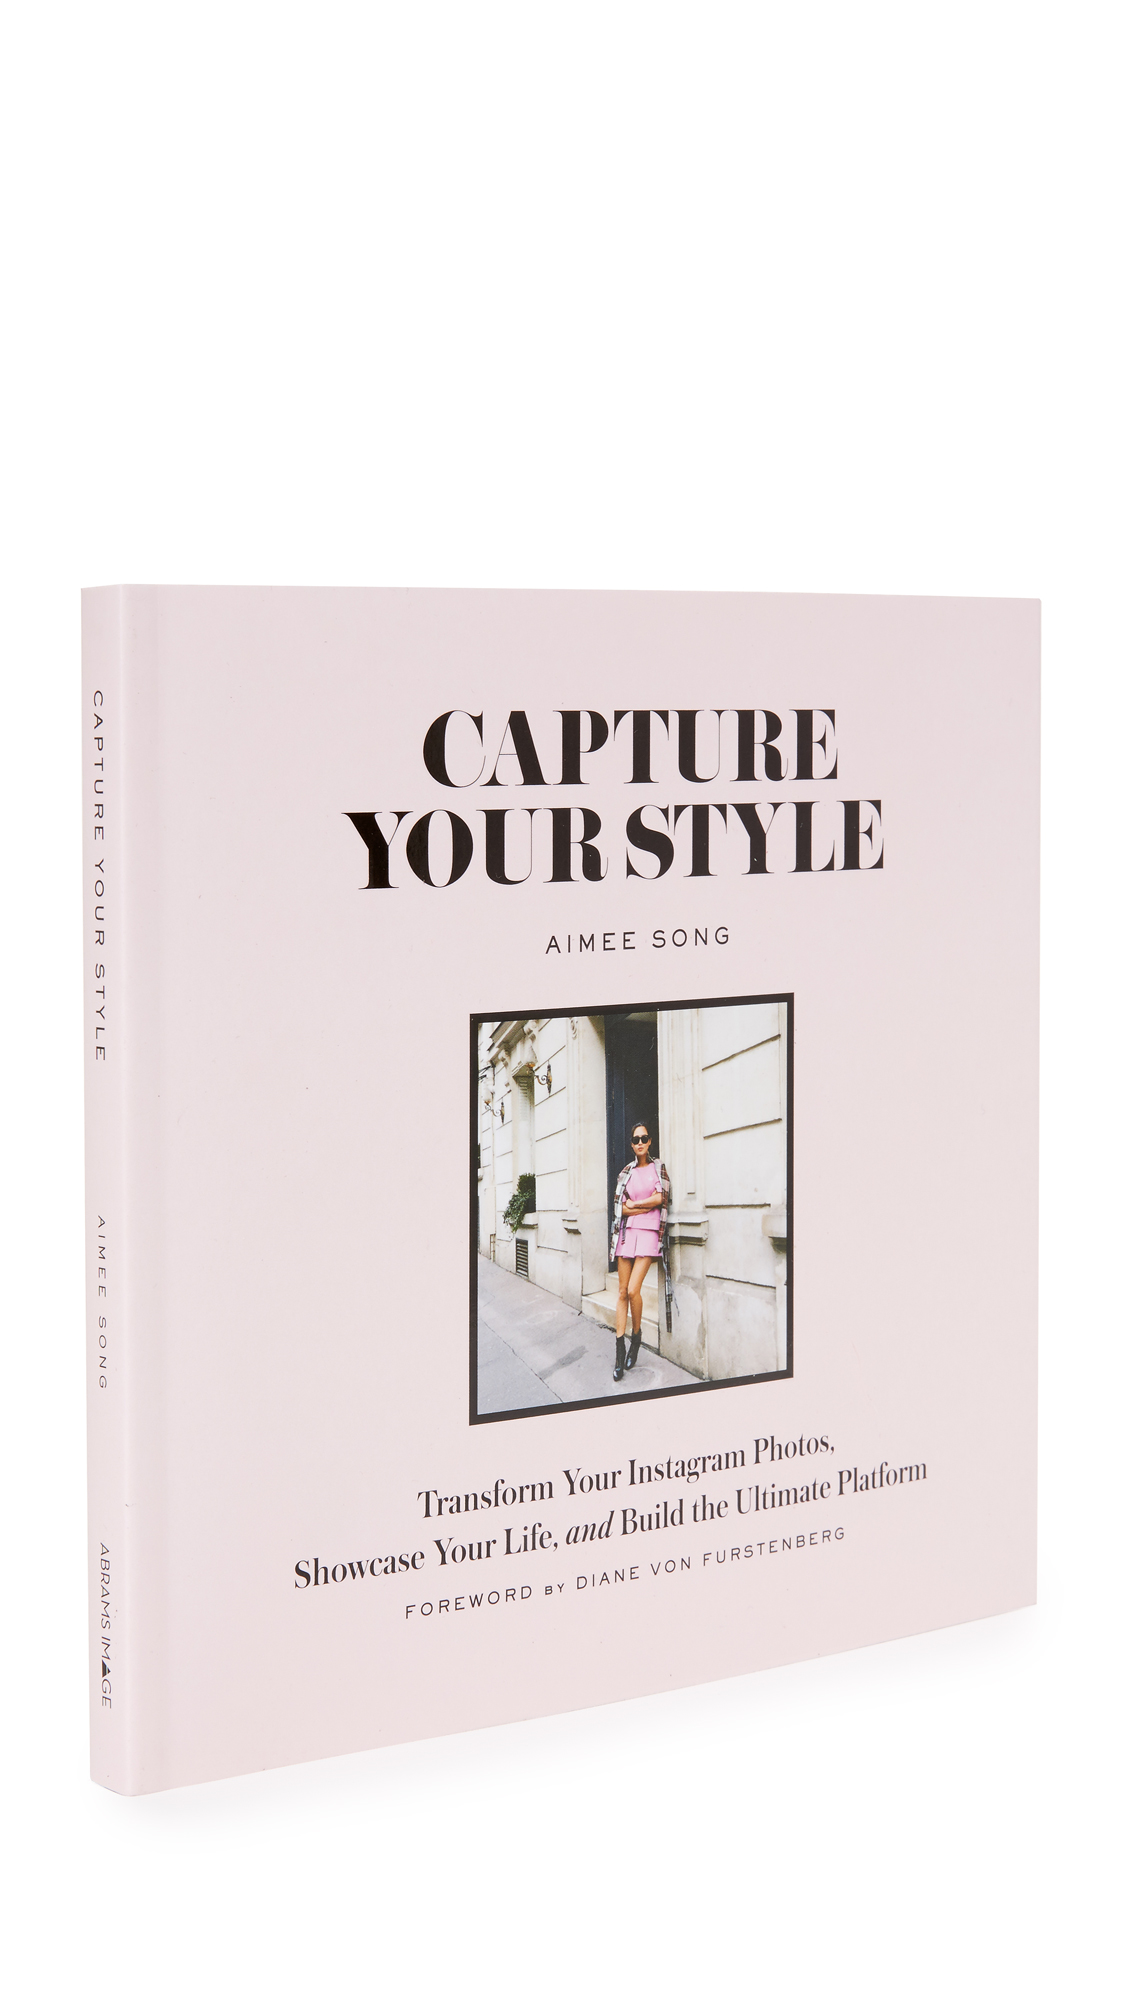 Books with Style Capture Your Style: Aimee Song - No Color